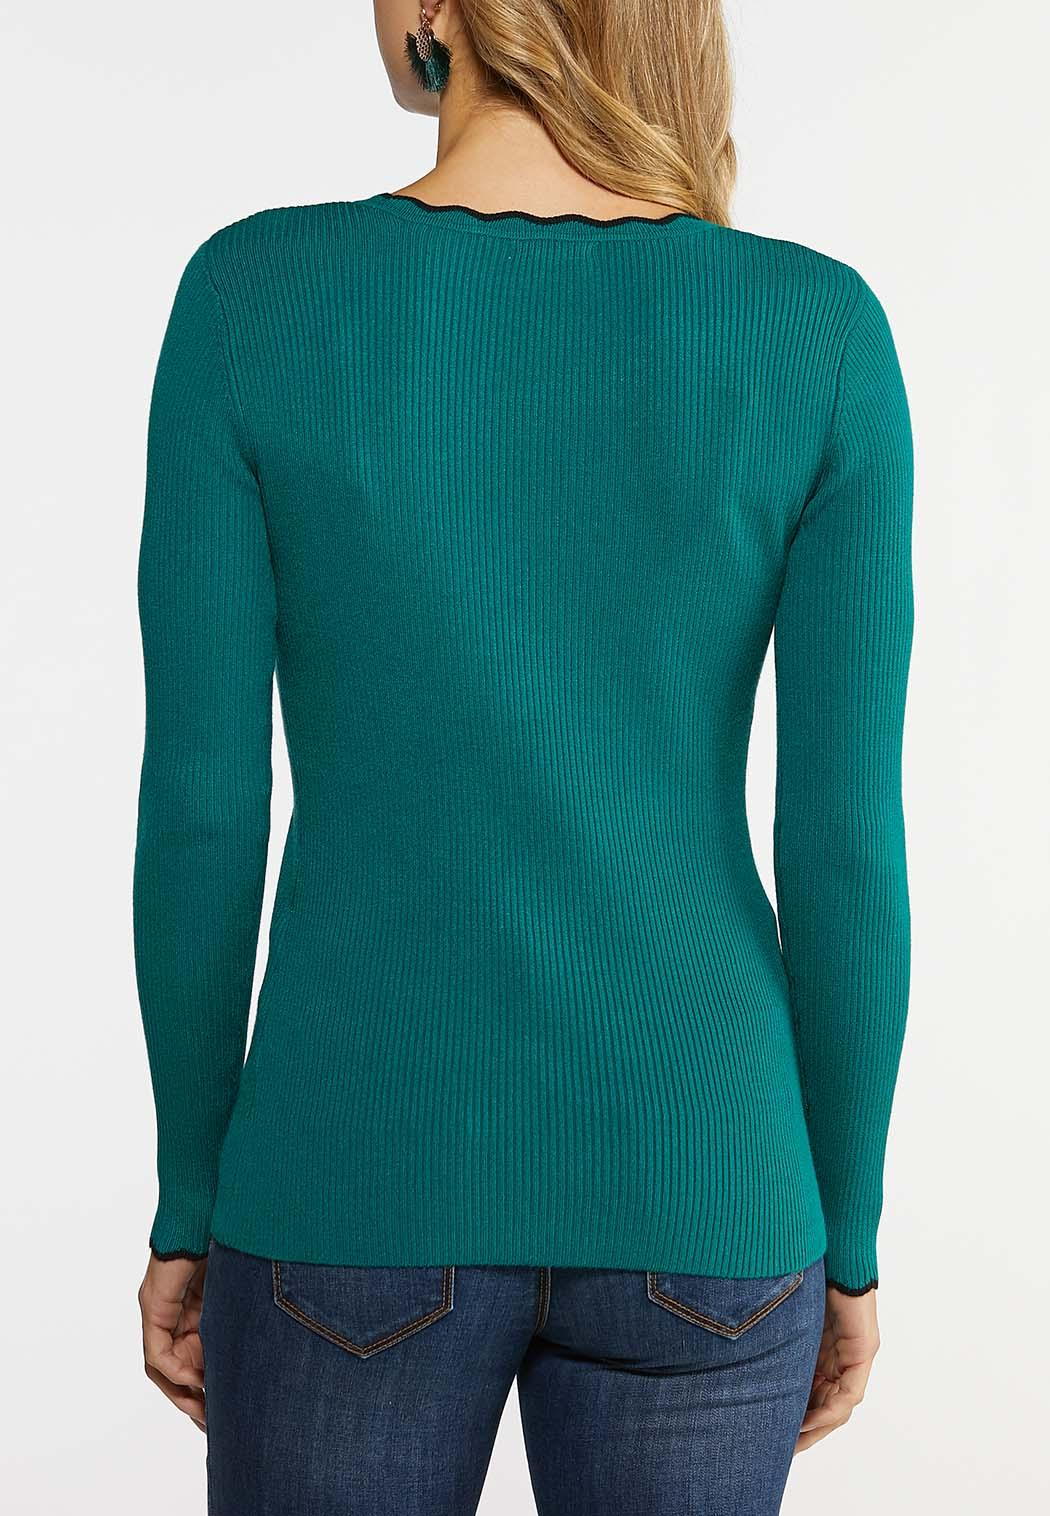 Plus Size Ribbed Scalloped Trim Sweater (Item #43960973)